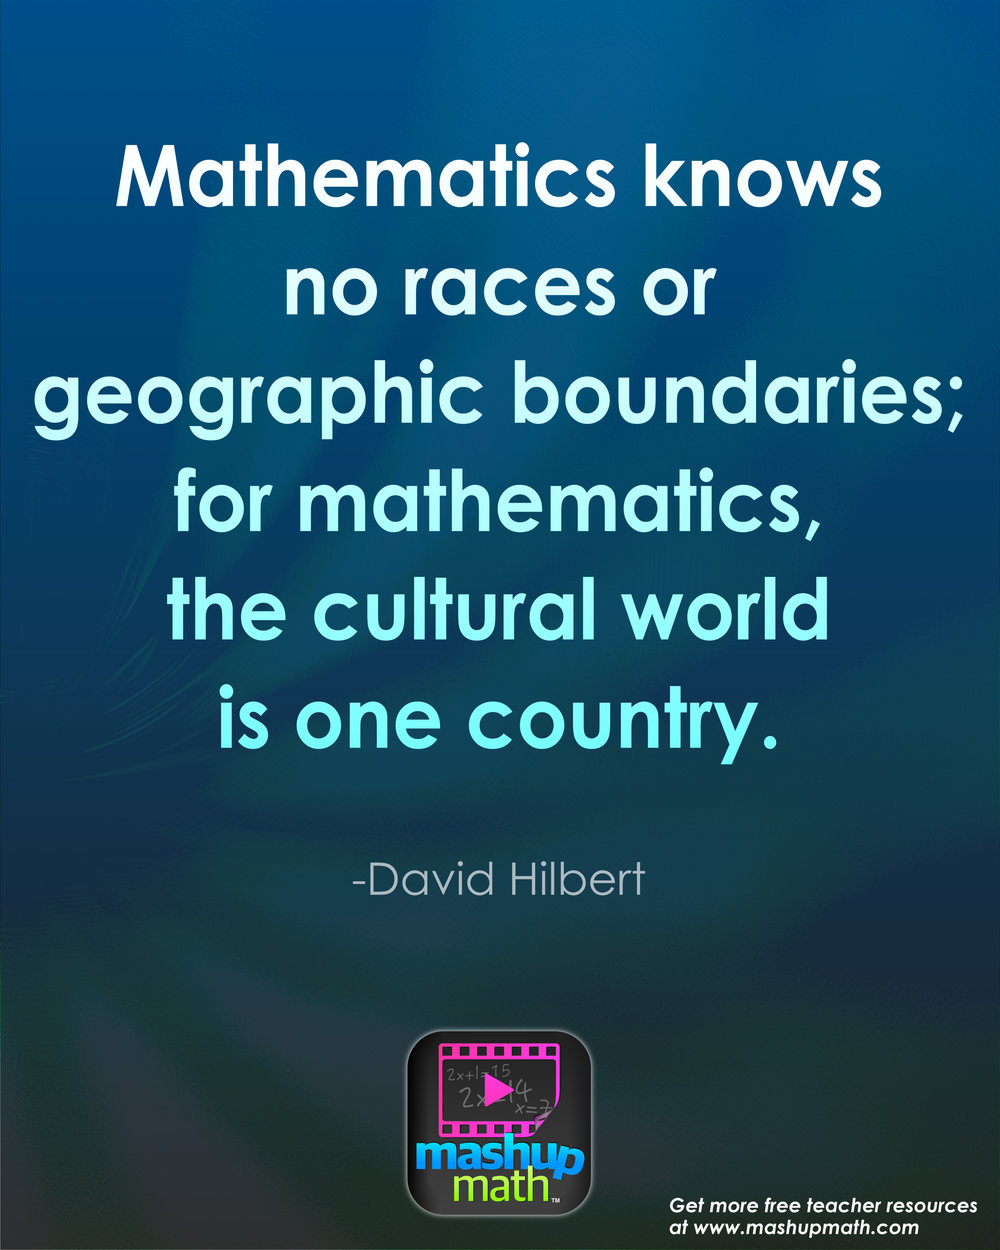 Inspirational Math Quotes: 17 Groovy Math Quotes To Post In Your Classroom